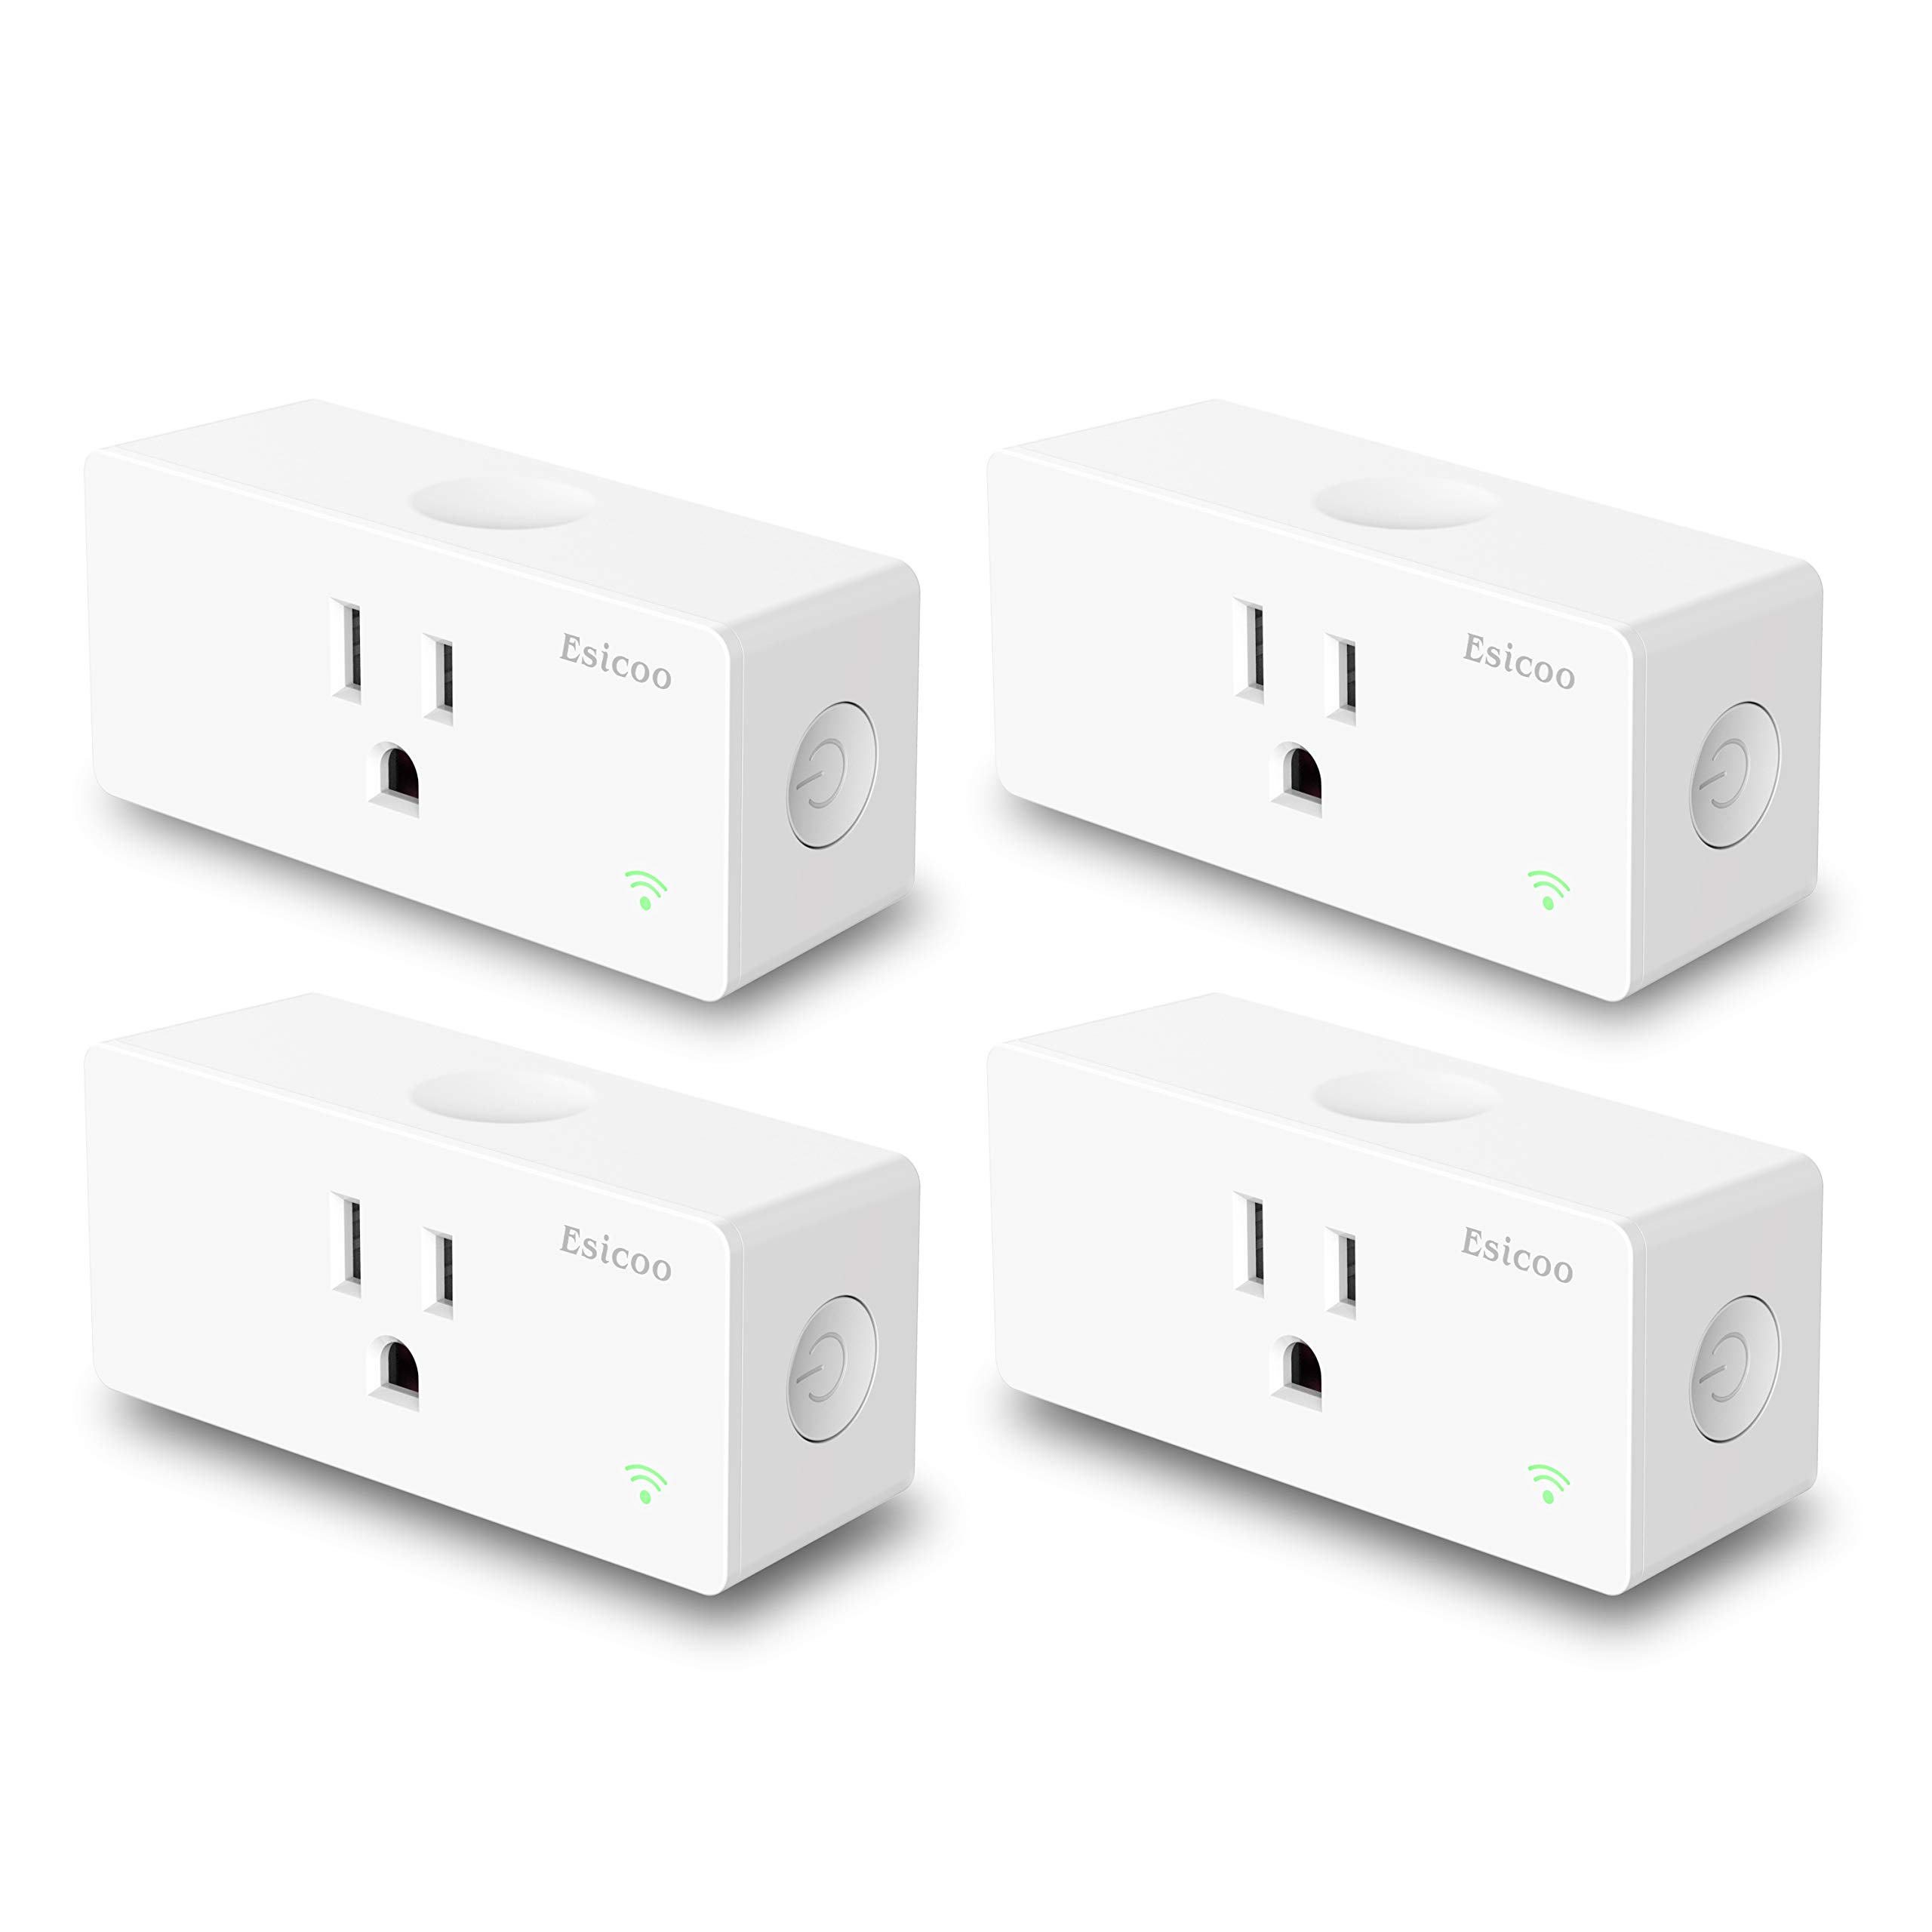 Esicoo Wi-Fi Smart Plug 4 Pack,15A,Compatiable with Amazon Alexa and Google Assistant,No Hub Required Control Your Devices from Anywhere